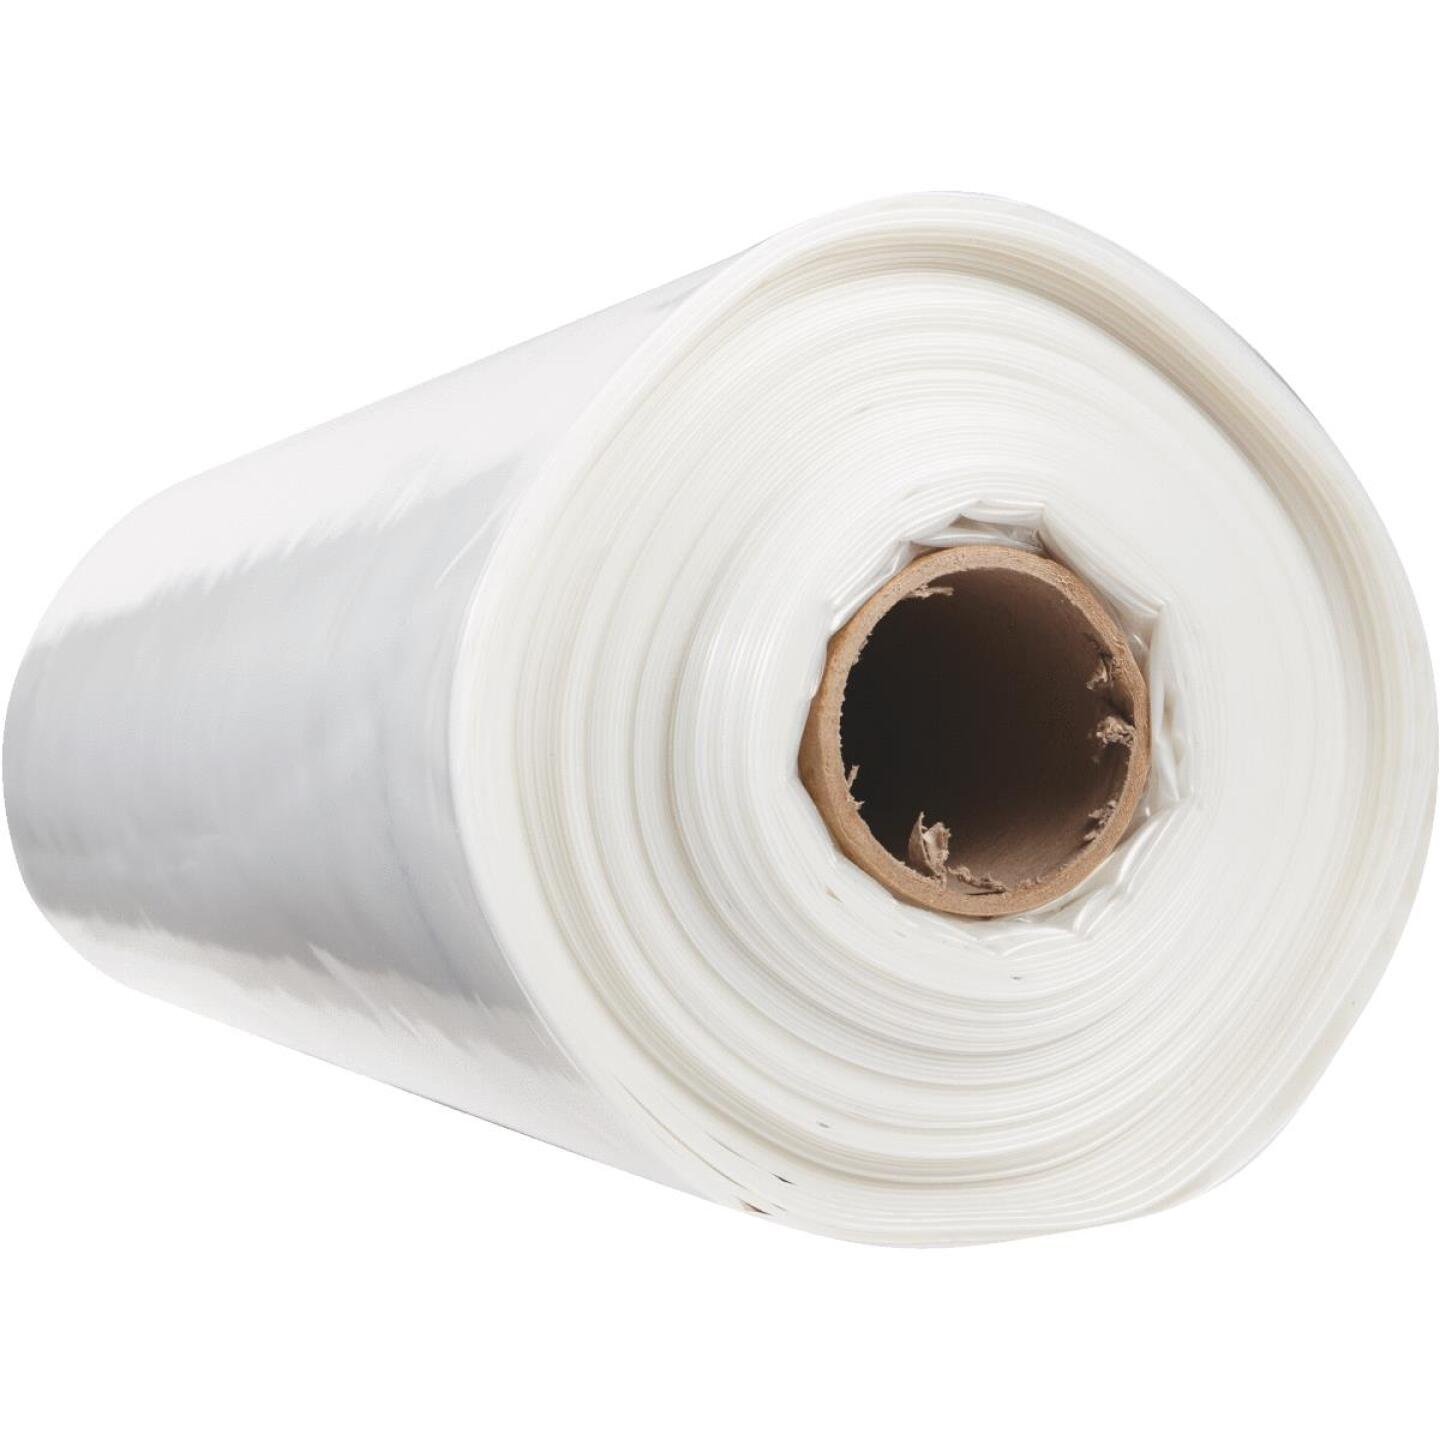 Film-Gard 20 Ft. x 100 Ft. Clear 6 Mil. Polyethylene Sheeting Image 1